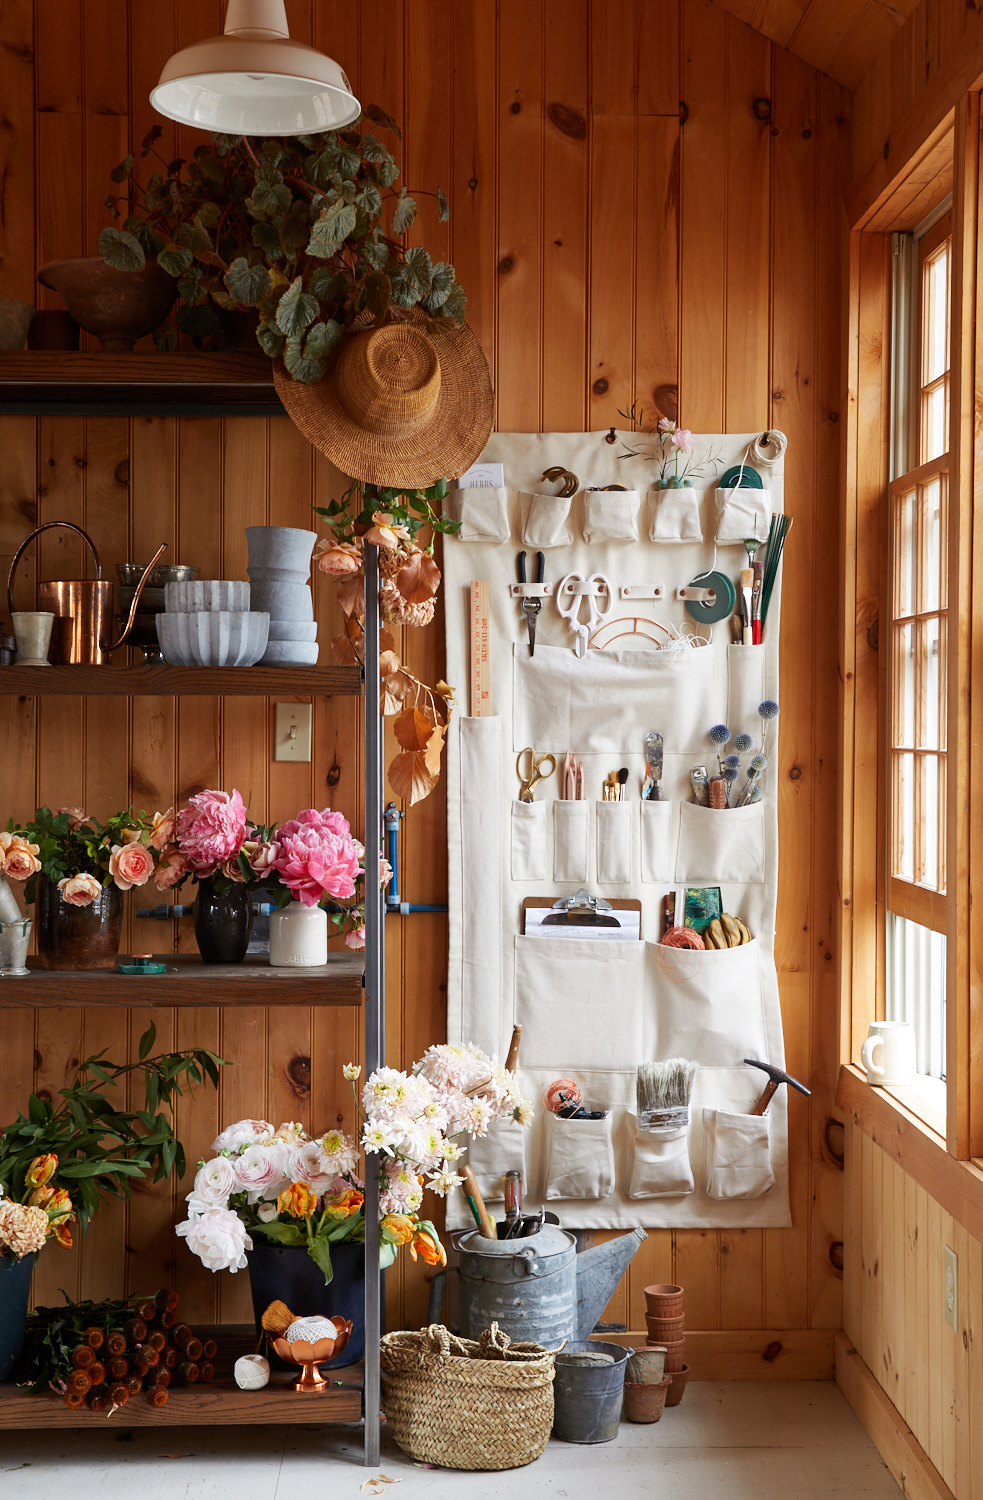 garden wall organizer and shelves